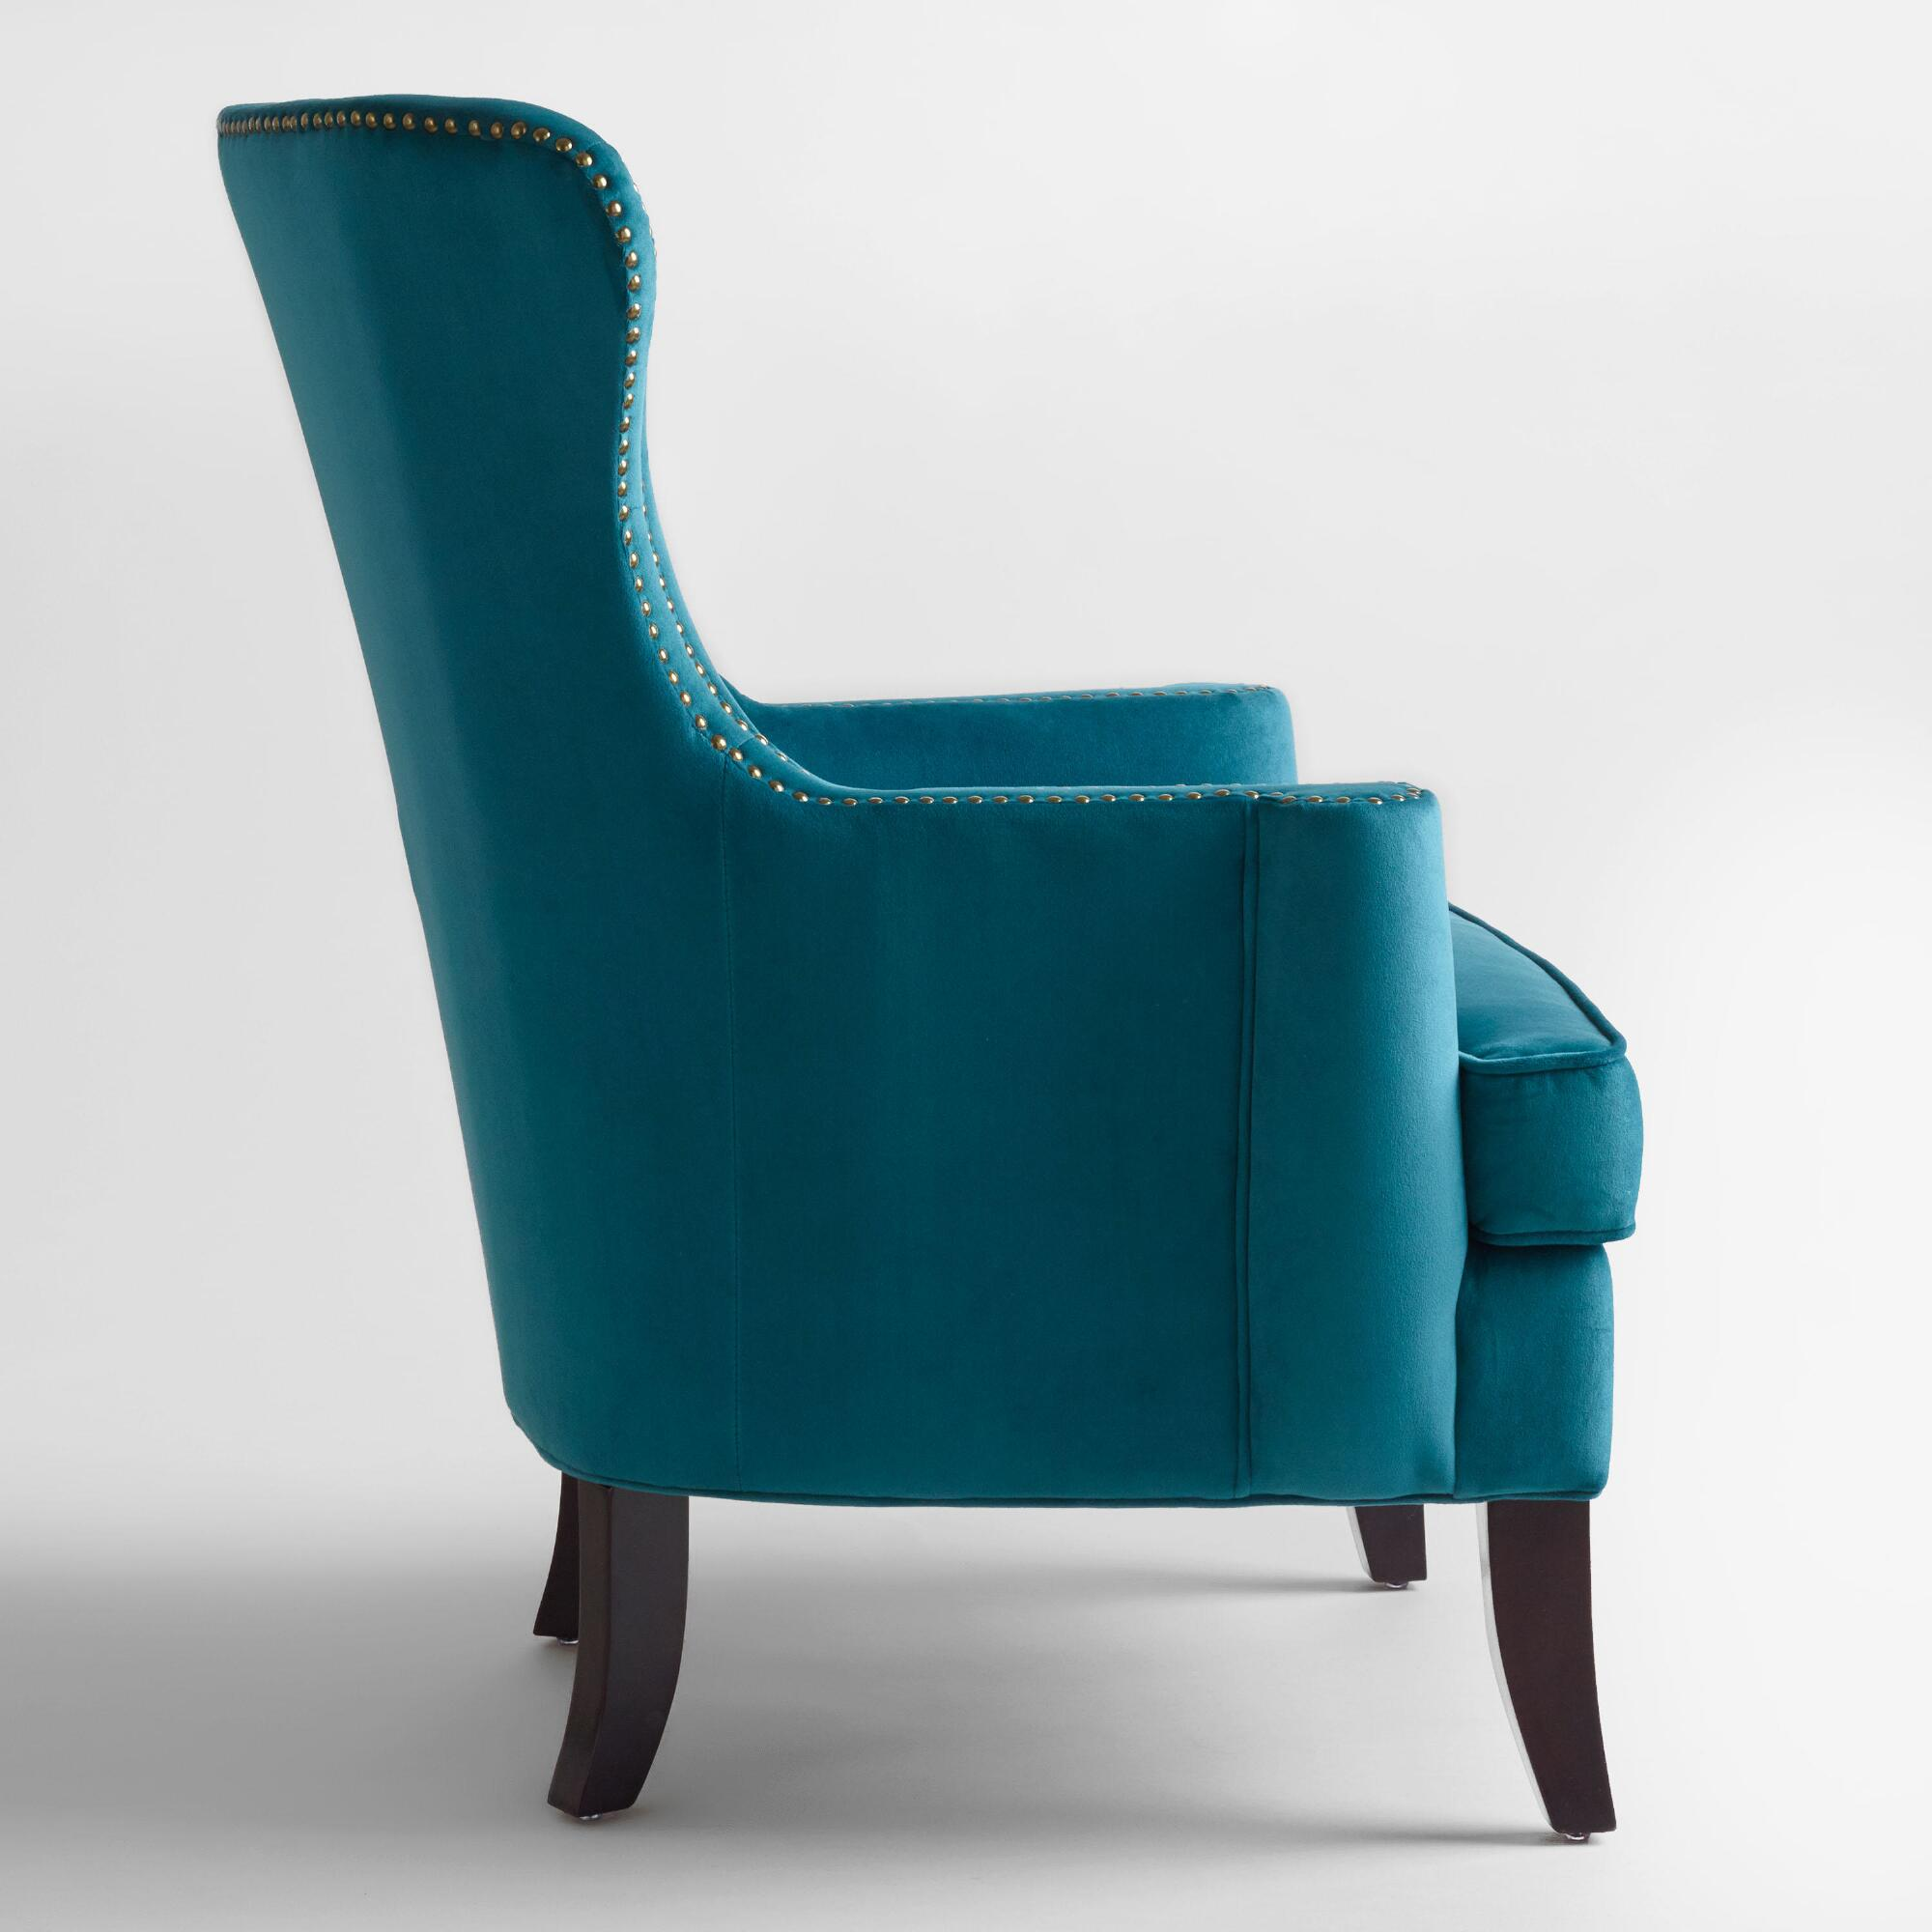 Teal wingback chair - Teal Wingback Chair 1